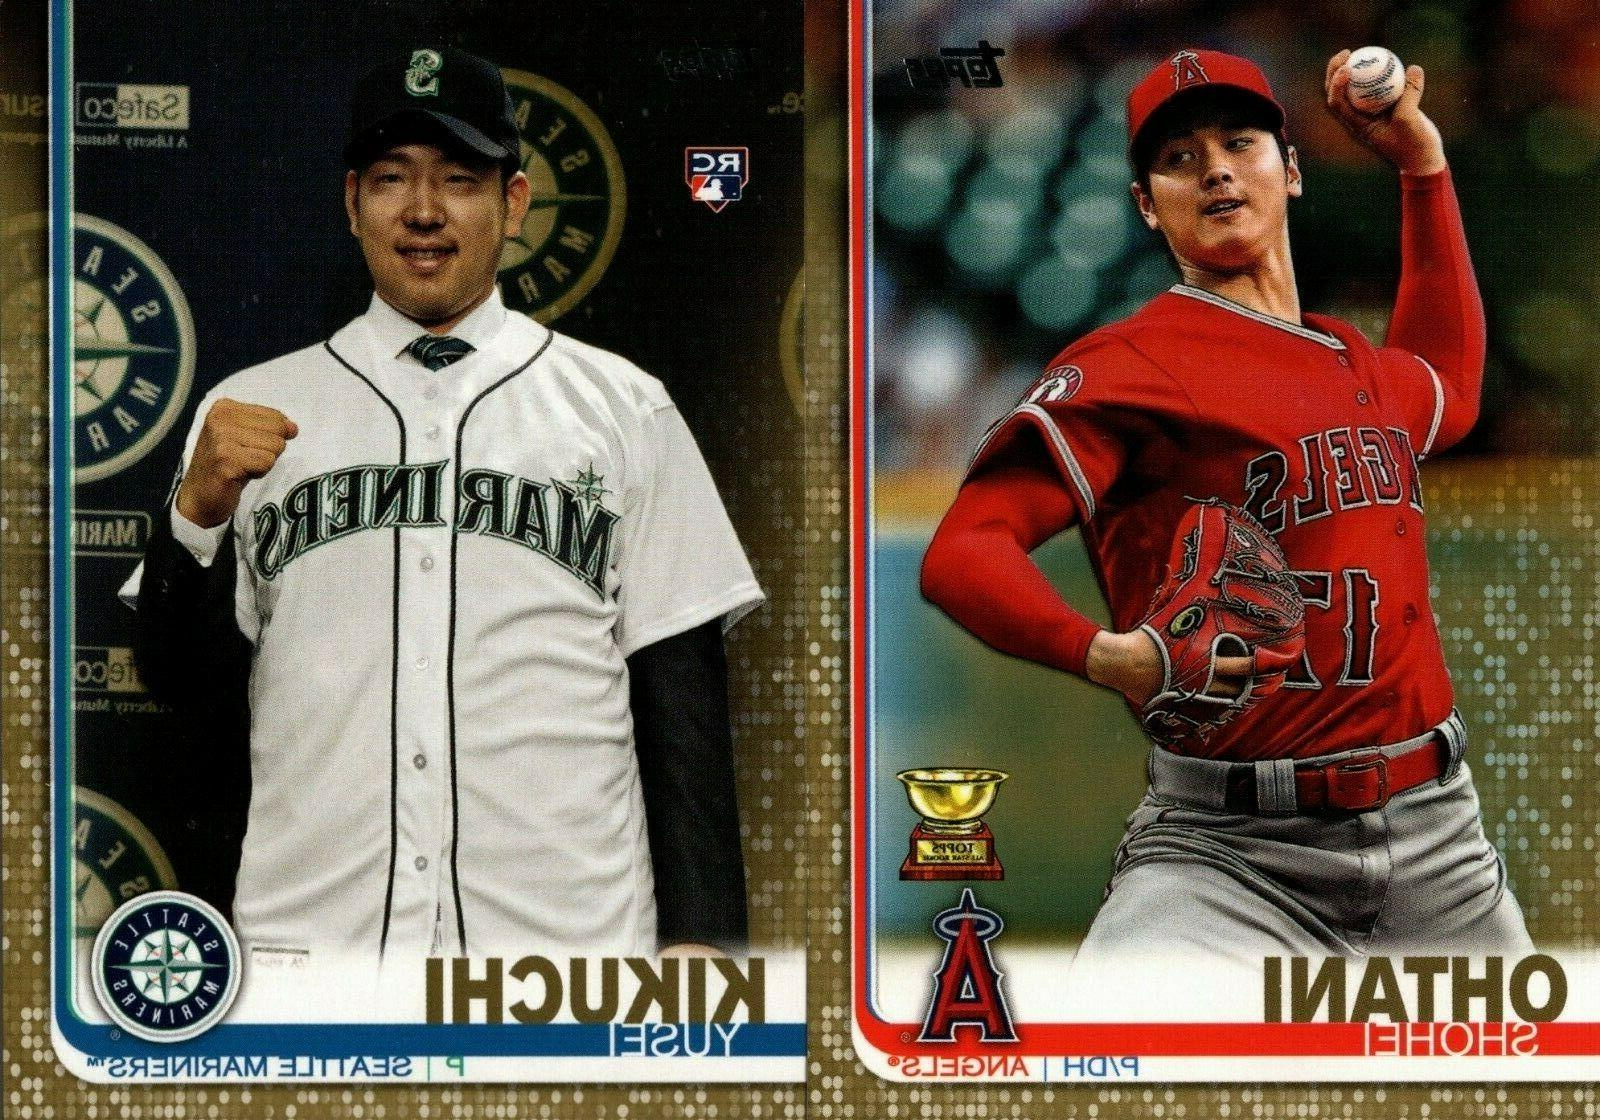 2019 topps series 2 base gold 500